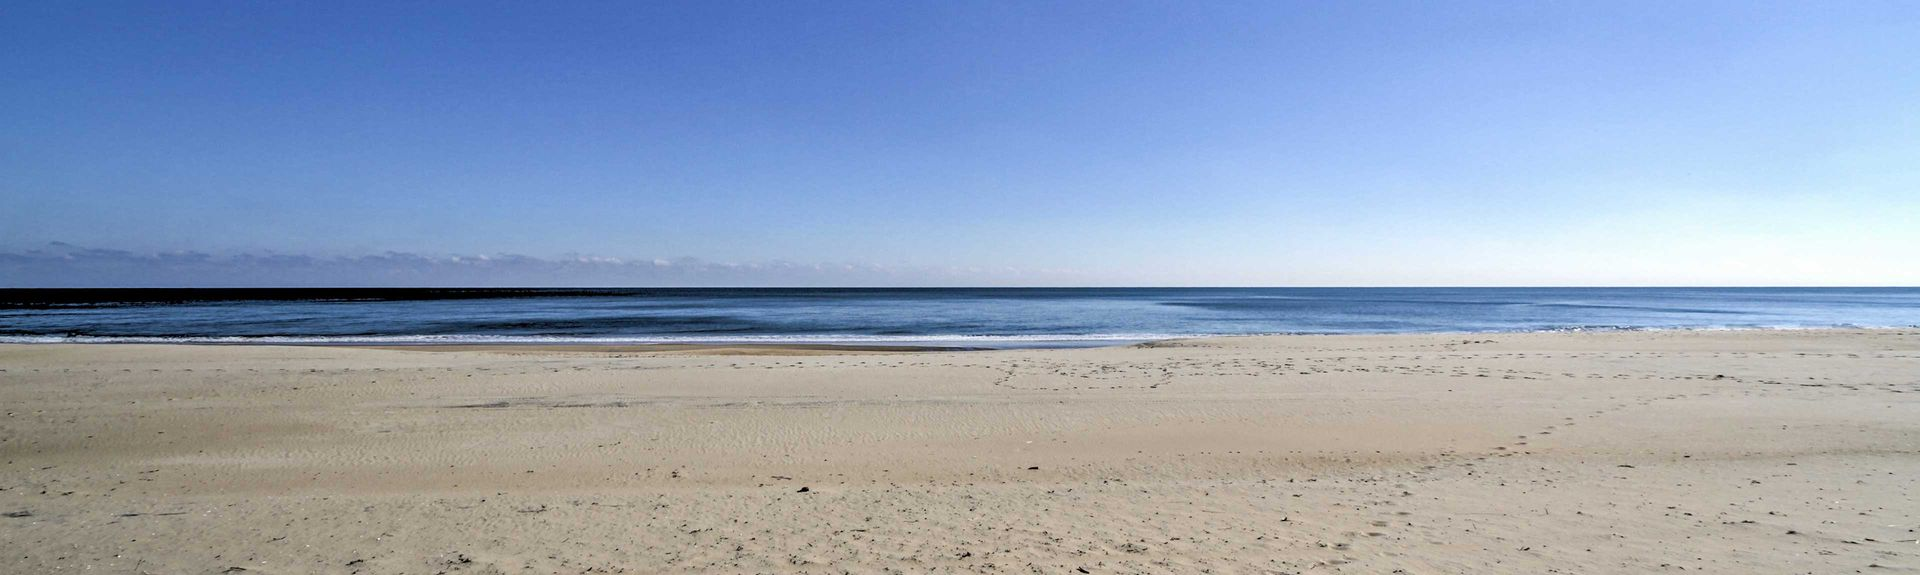 Our Place (Ocean City, Maryland, Verenigde Staten)